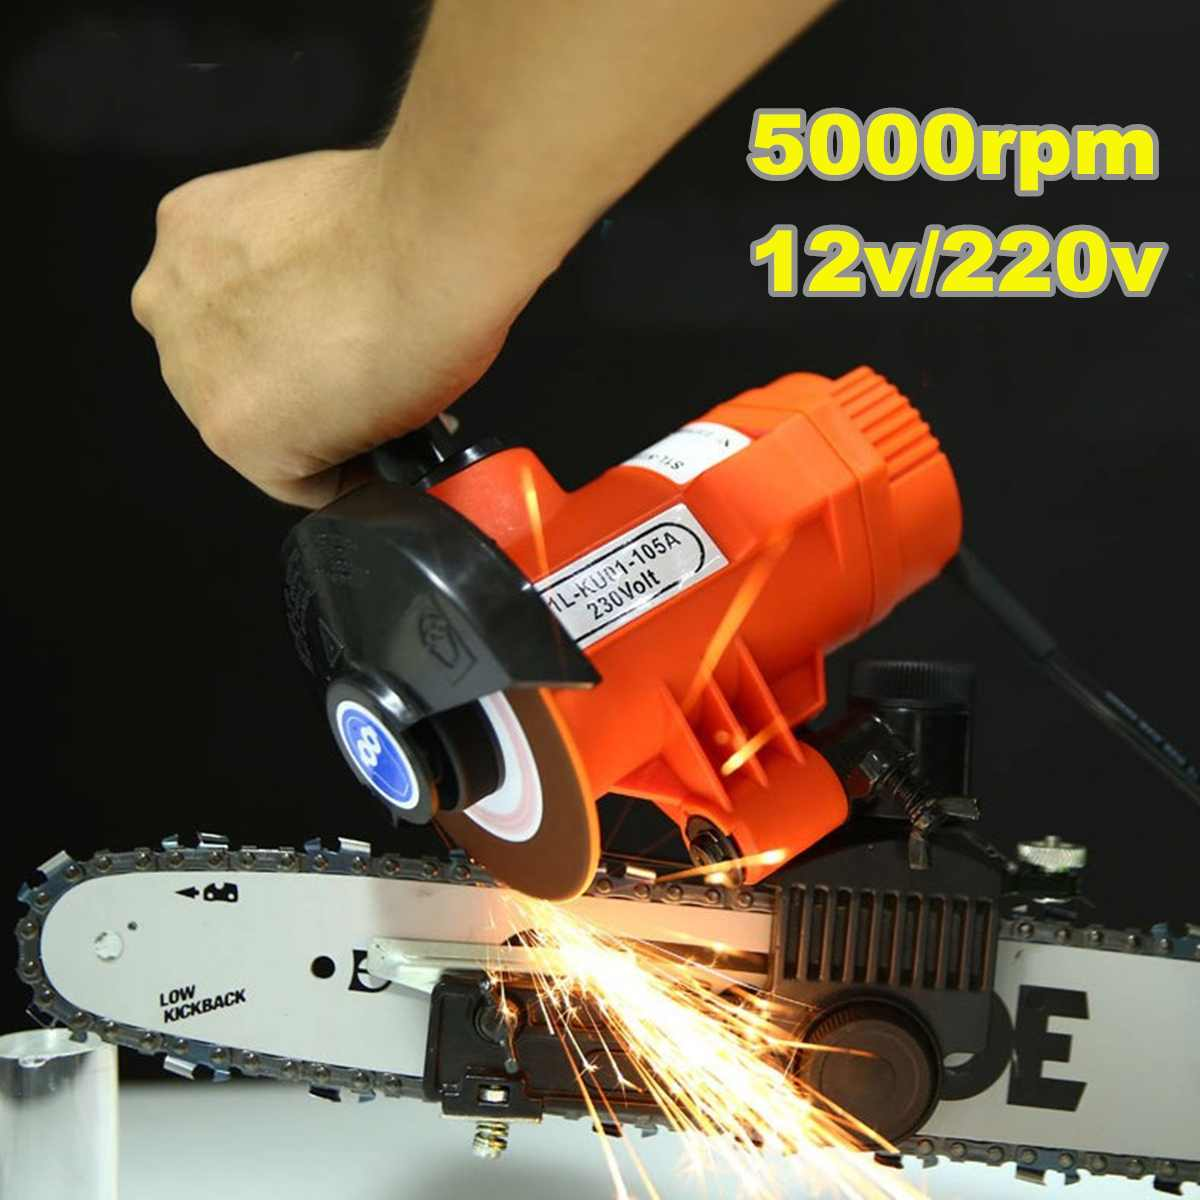 Electric Chainsaw Chain Saw Blade Grinder Wheel Sharpener Tool Wheel Guard Ruler Woodworking Power Tools Kit 12V/220V 85WElectric Chainsaw Chain Saw Blade Grinder Wheel Sharpener Tool Wheel Guard Ruler Woodworking Power Tools Kit 12V/220V 85W